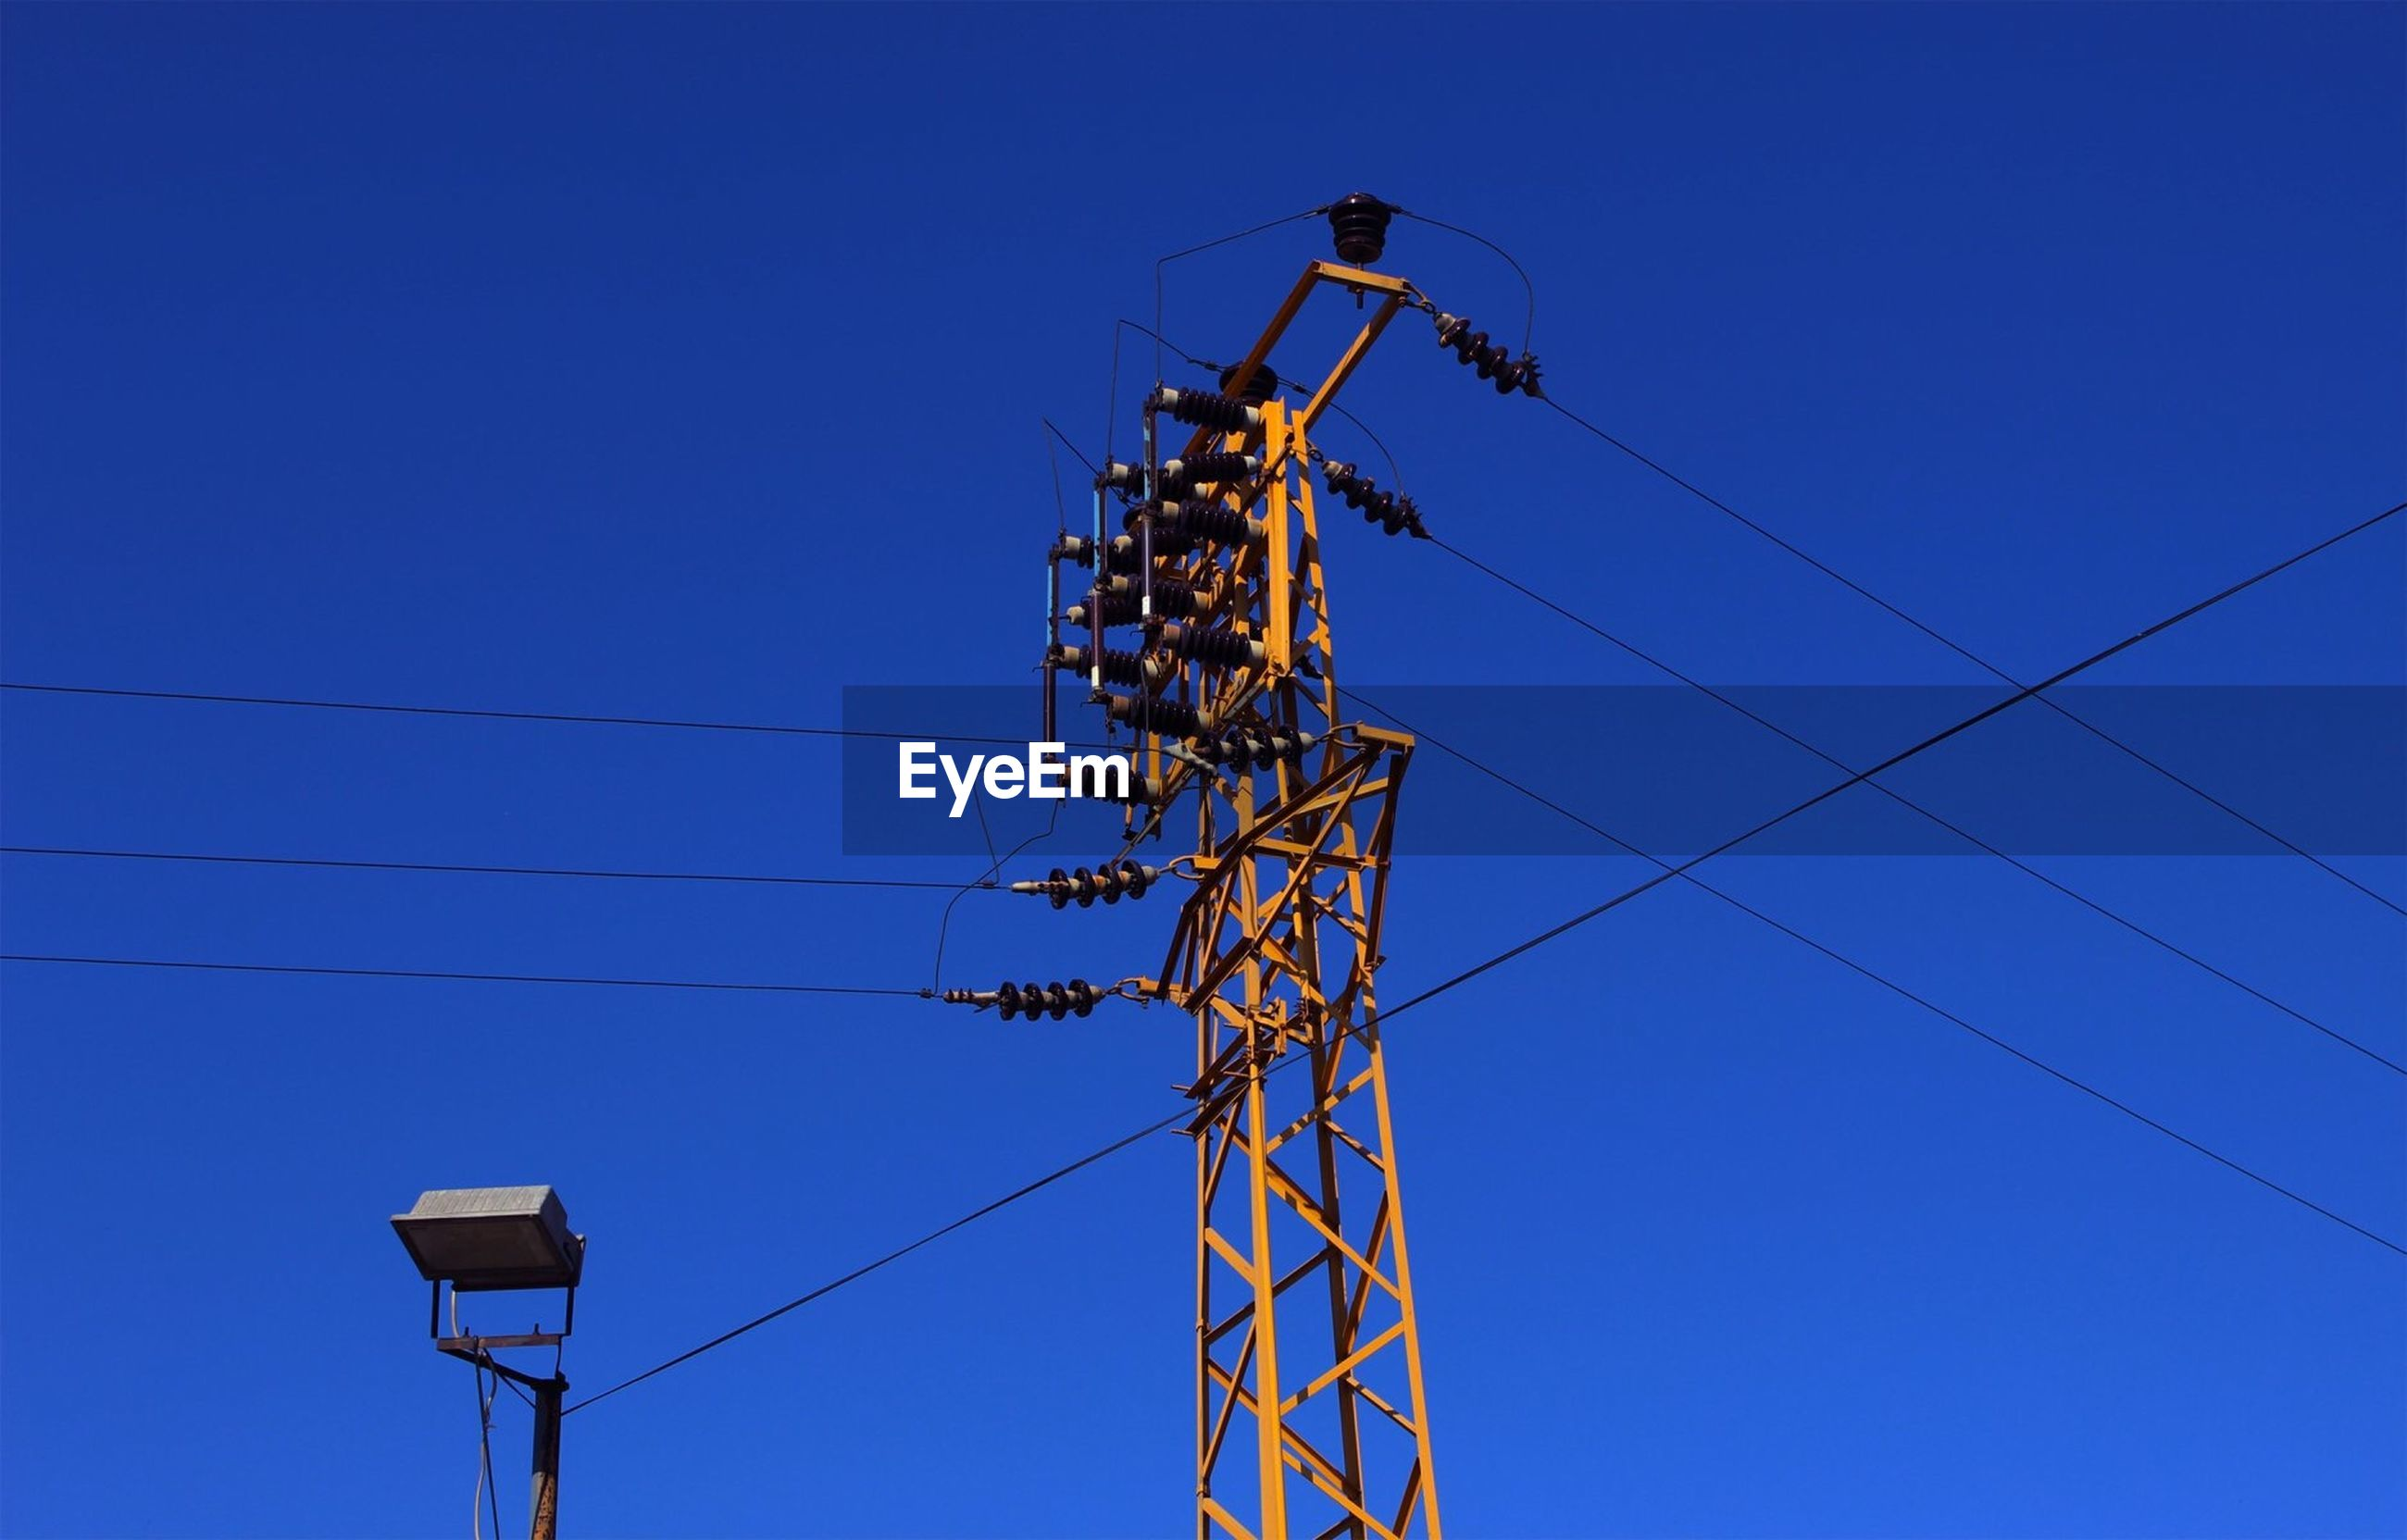 LOW ANGLE VIEW OF ELECTRICITY PYLONS AGAINST CLEAR BLUE SKY